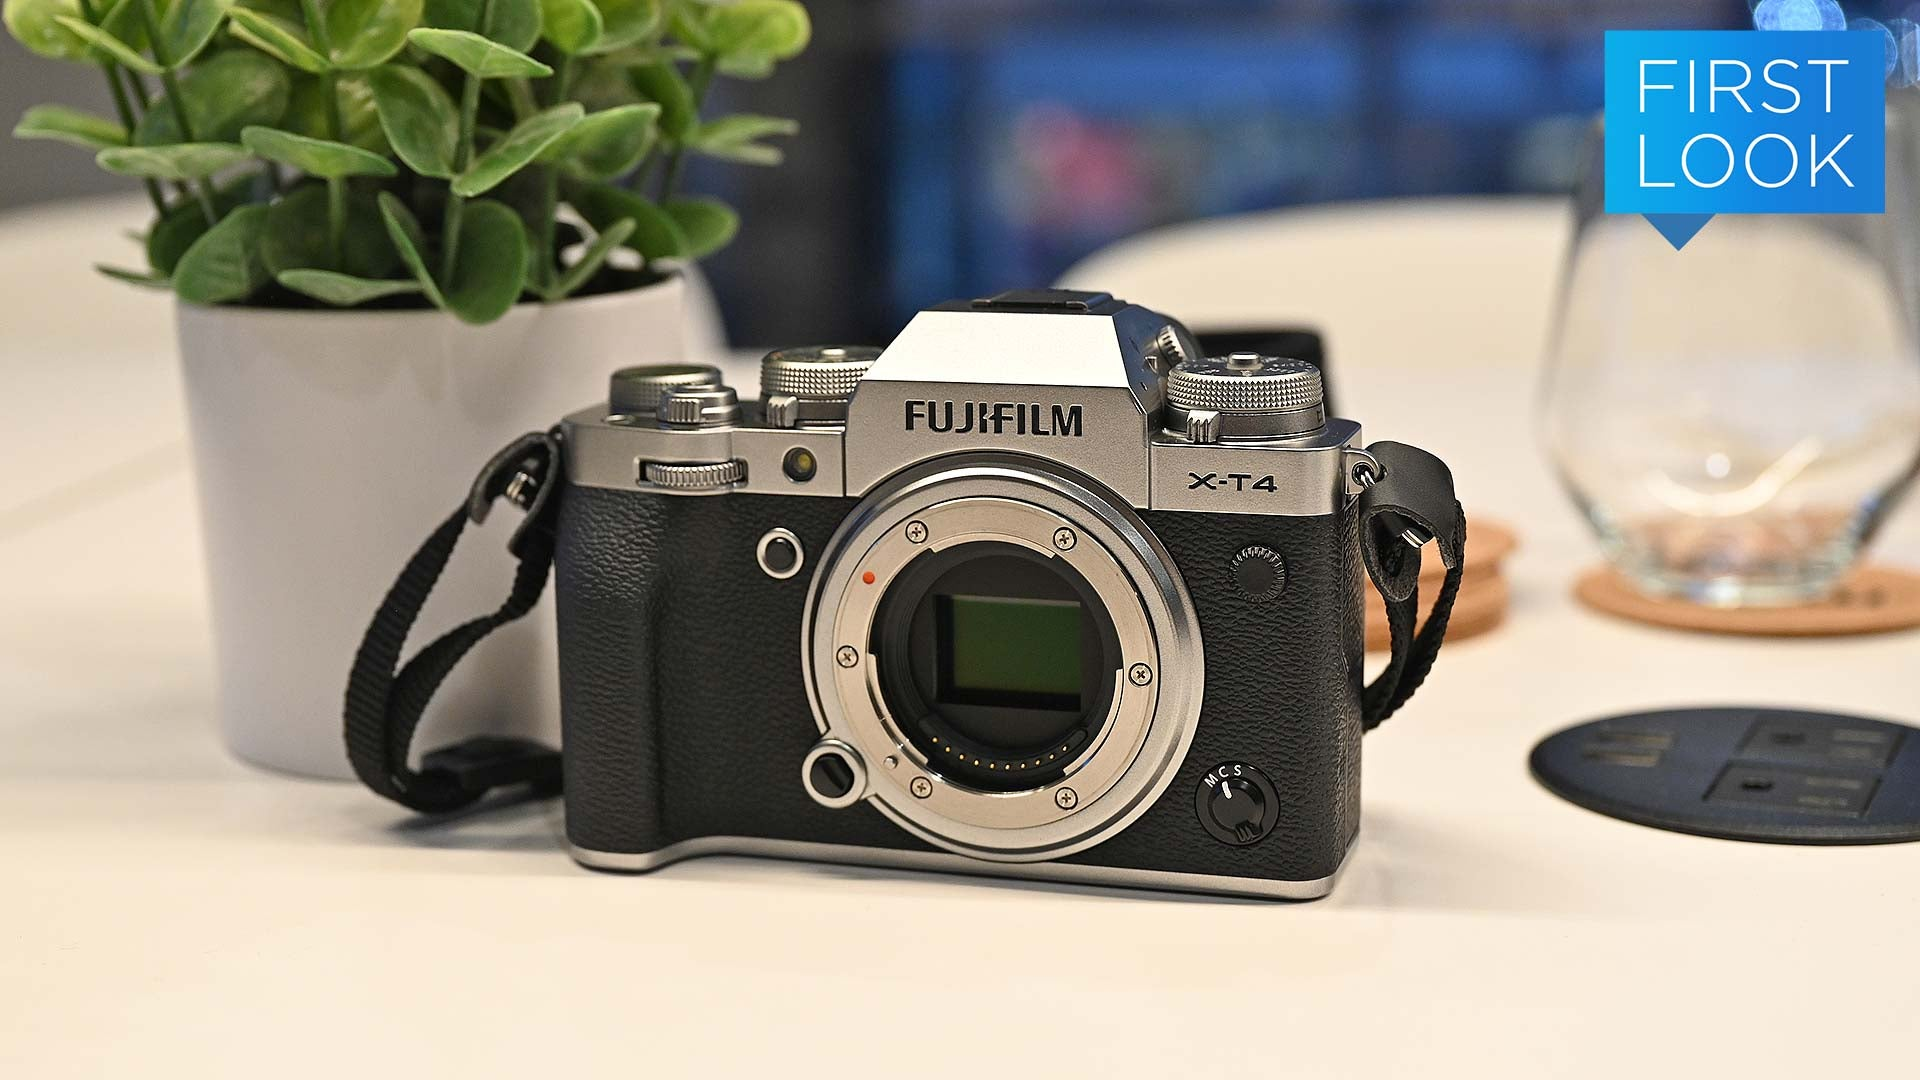 With The Fujifilm X-T4 One Of The Best APS-C Mirrorless Cams Gets Even Better